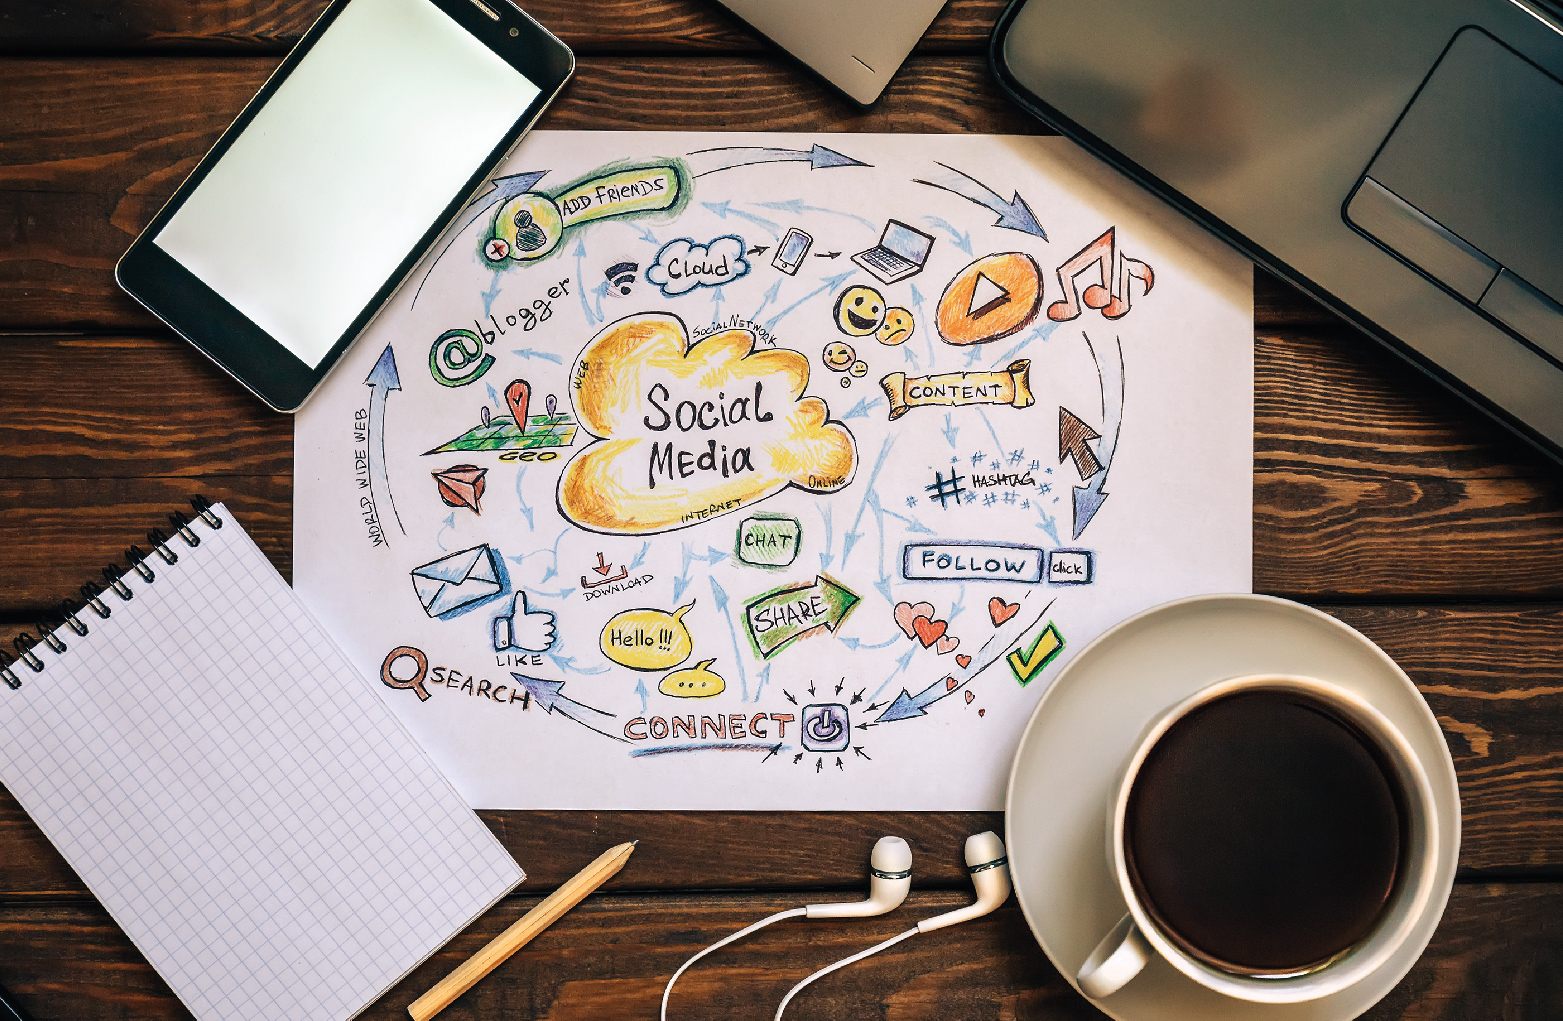 Social Media Marketing predictions for 2020 that you should not lose sight of